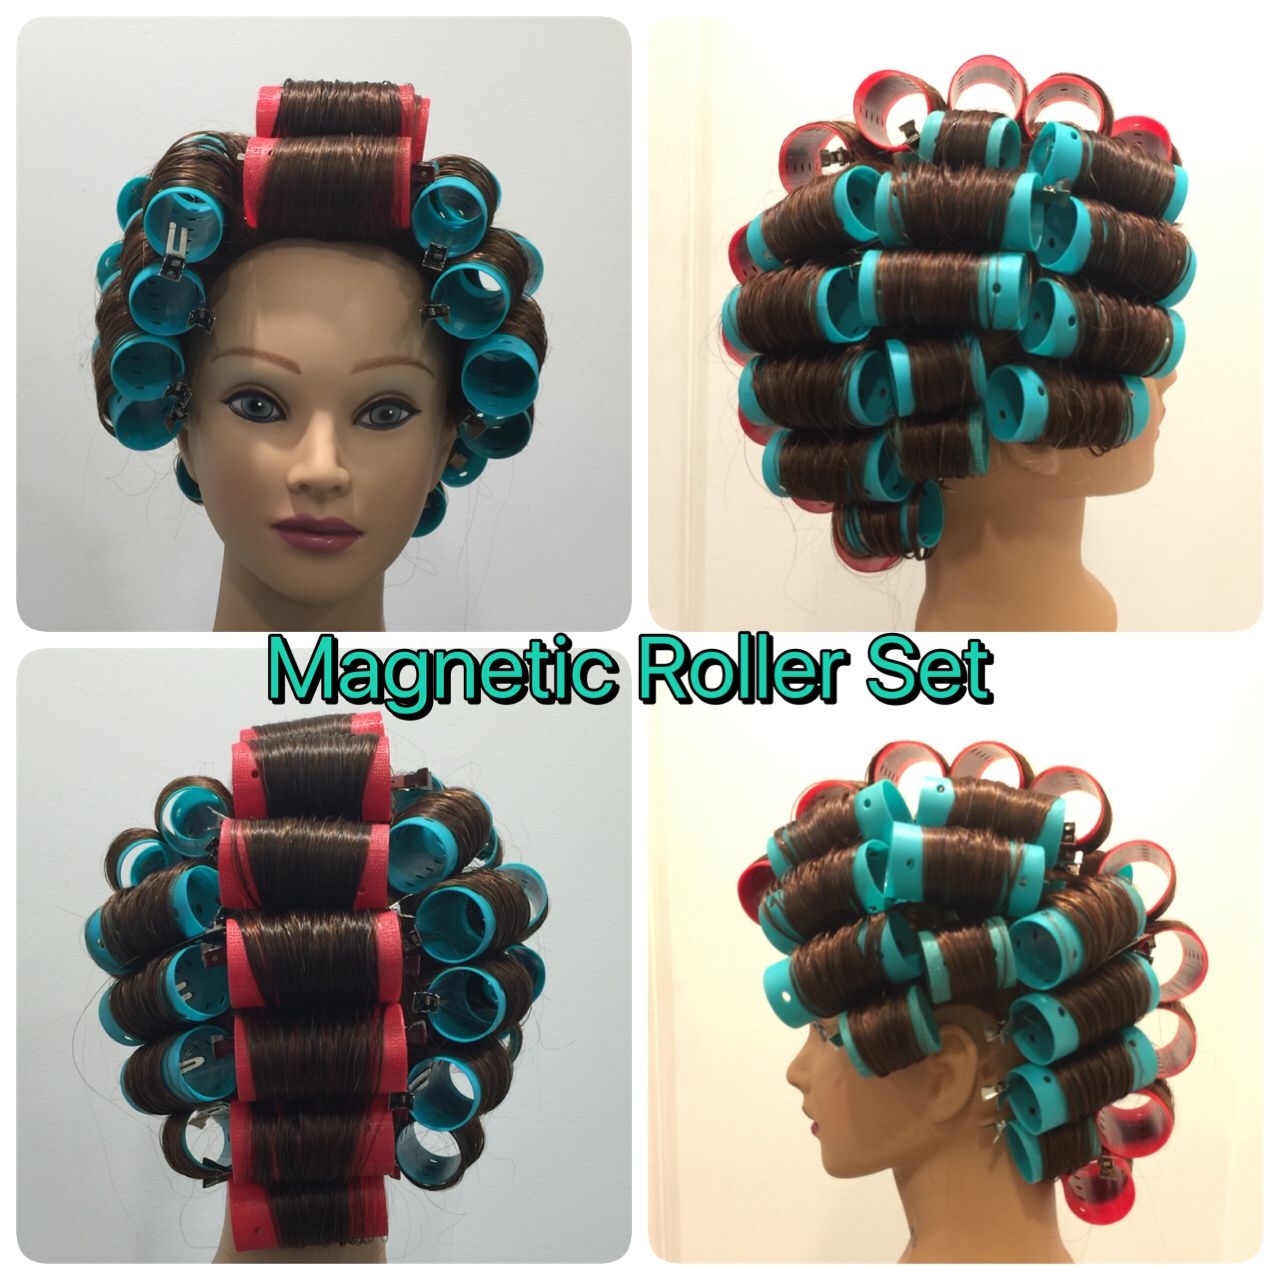 How To Do A Roller Set On Natural Hair